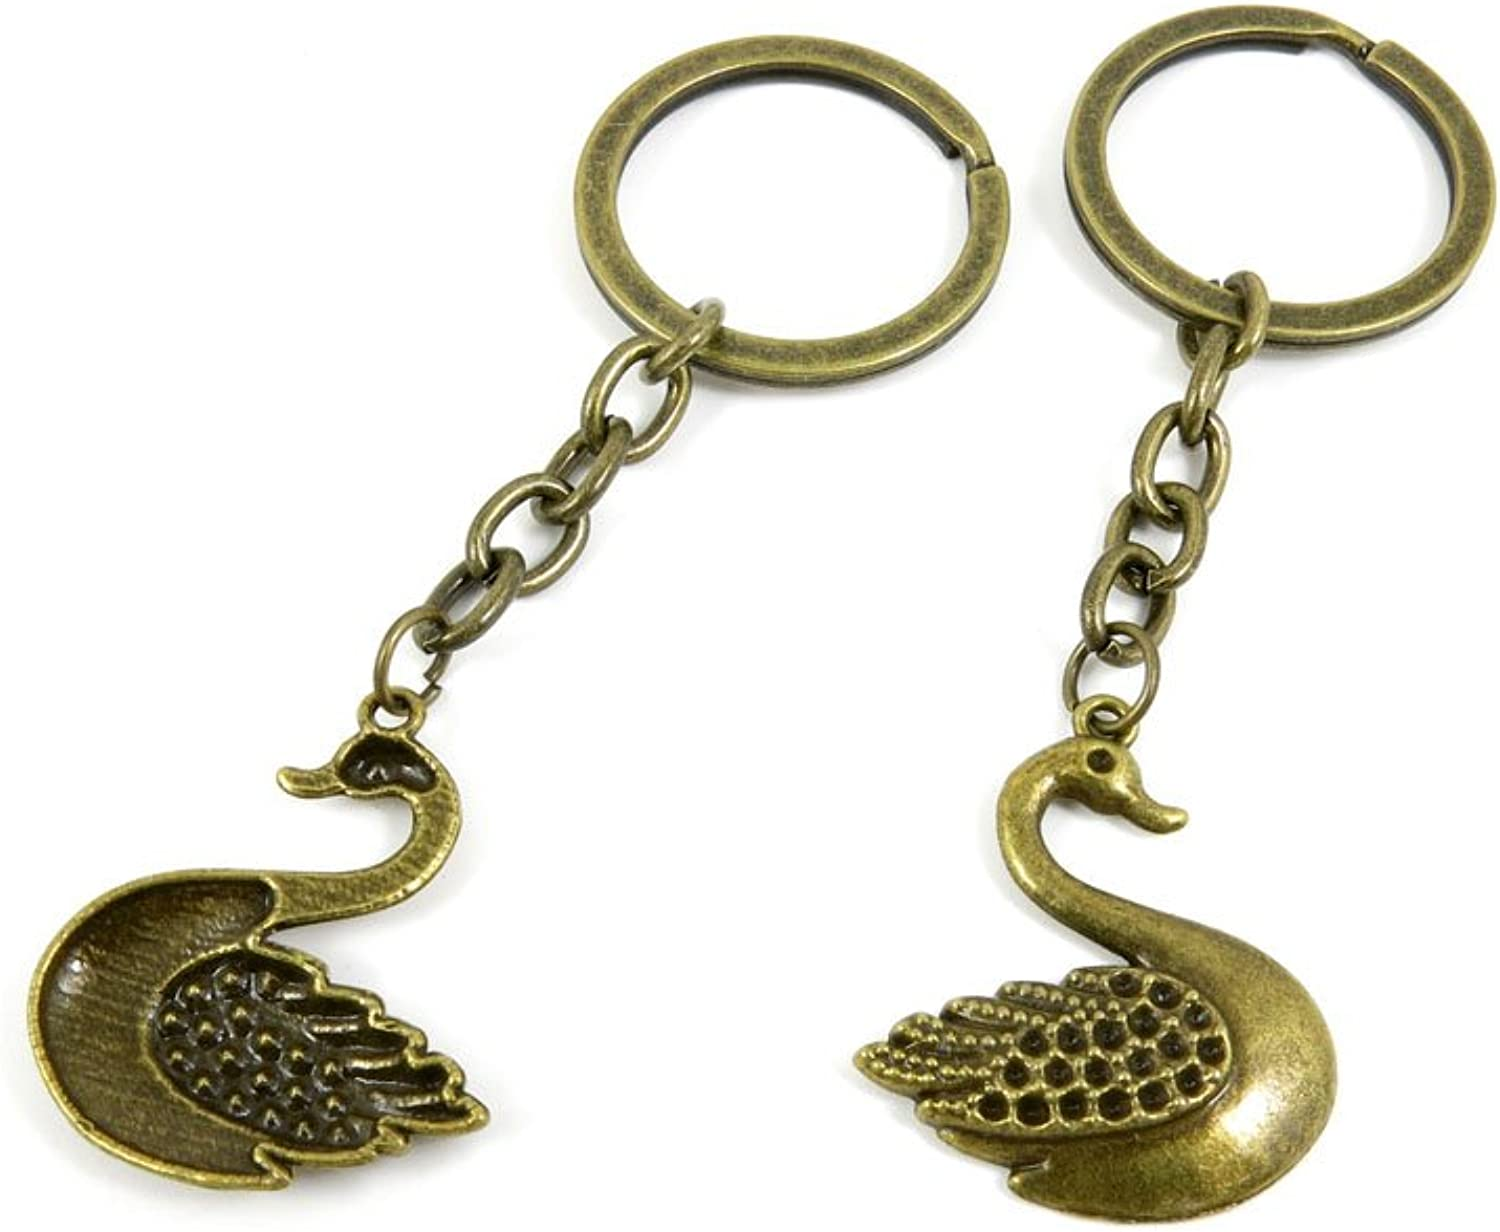 160 Pieces Fashion Jewelry Keyring Keychain Door Car Key Tag Ring Chain Supplier Supply Wholesale Bulk Lots Q3GC6 Swan